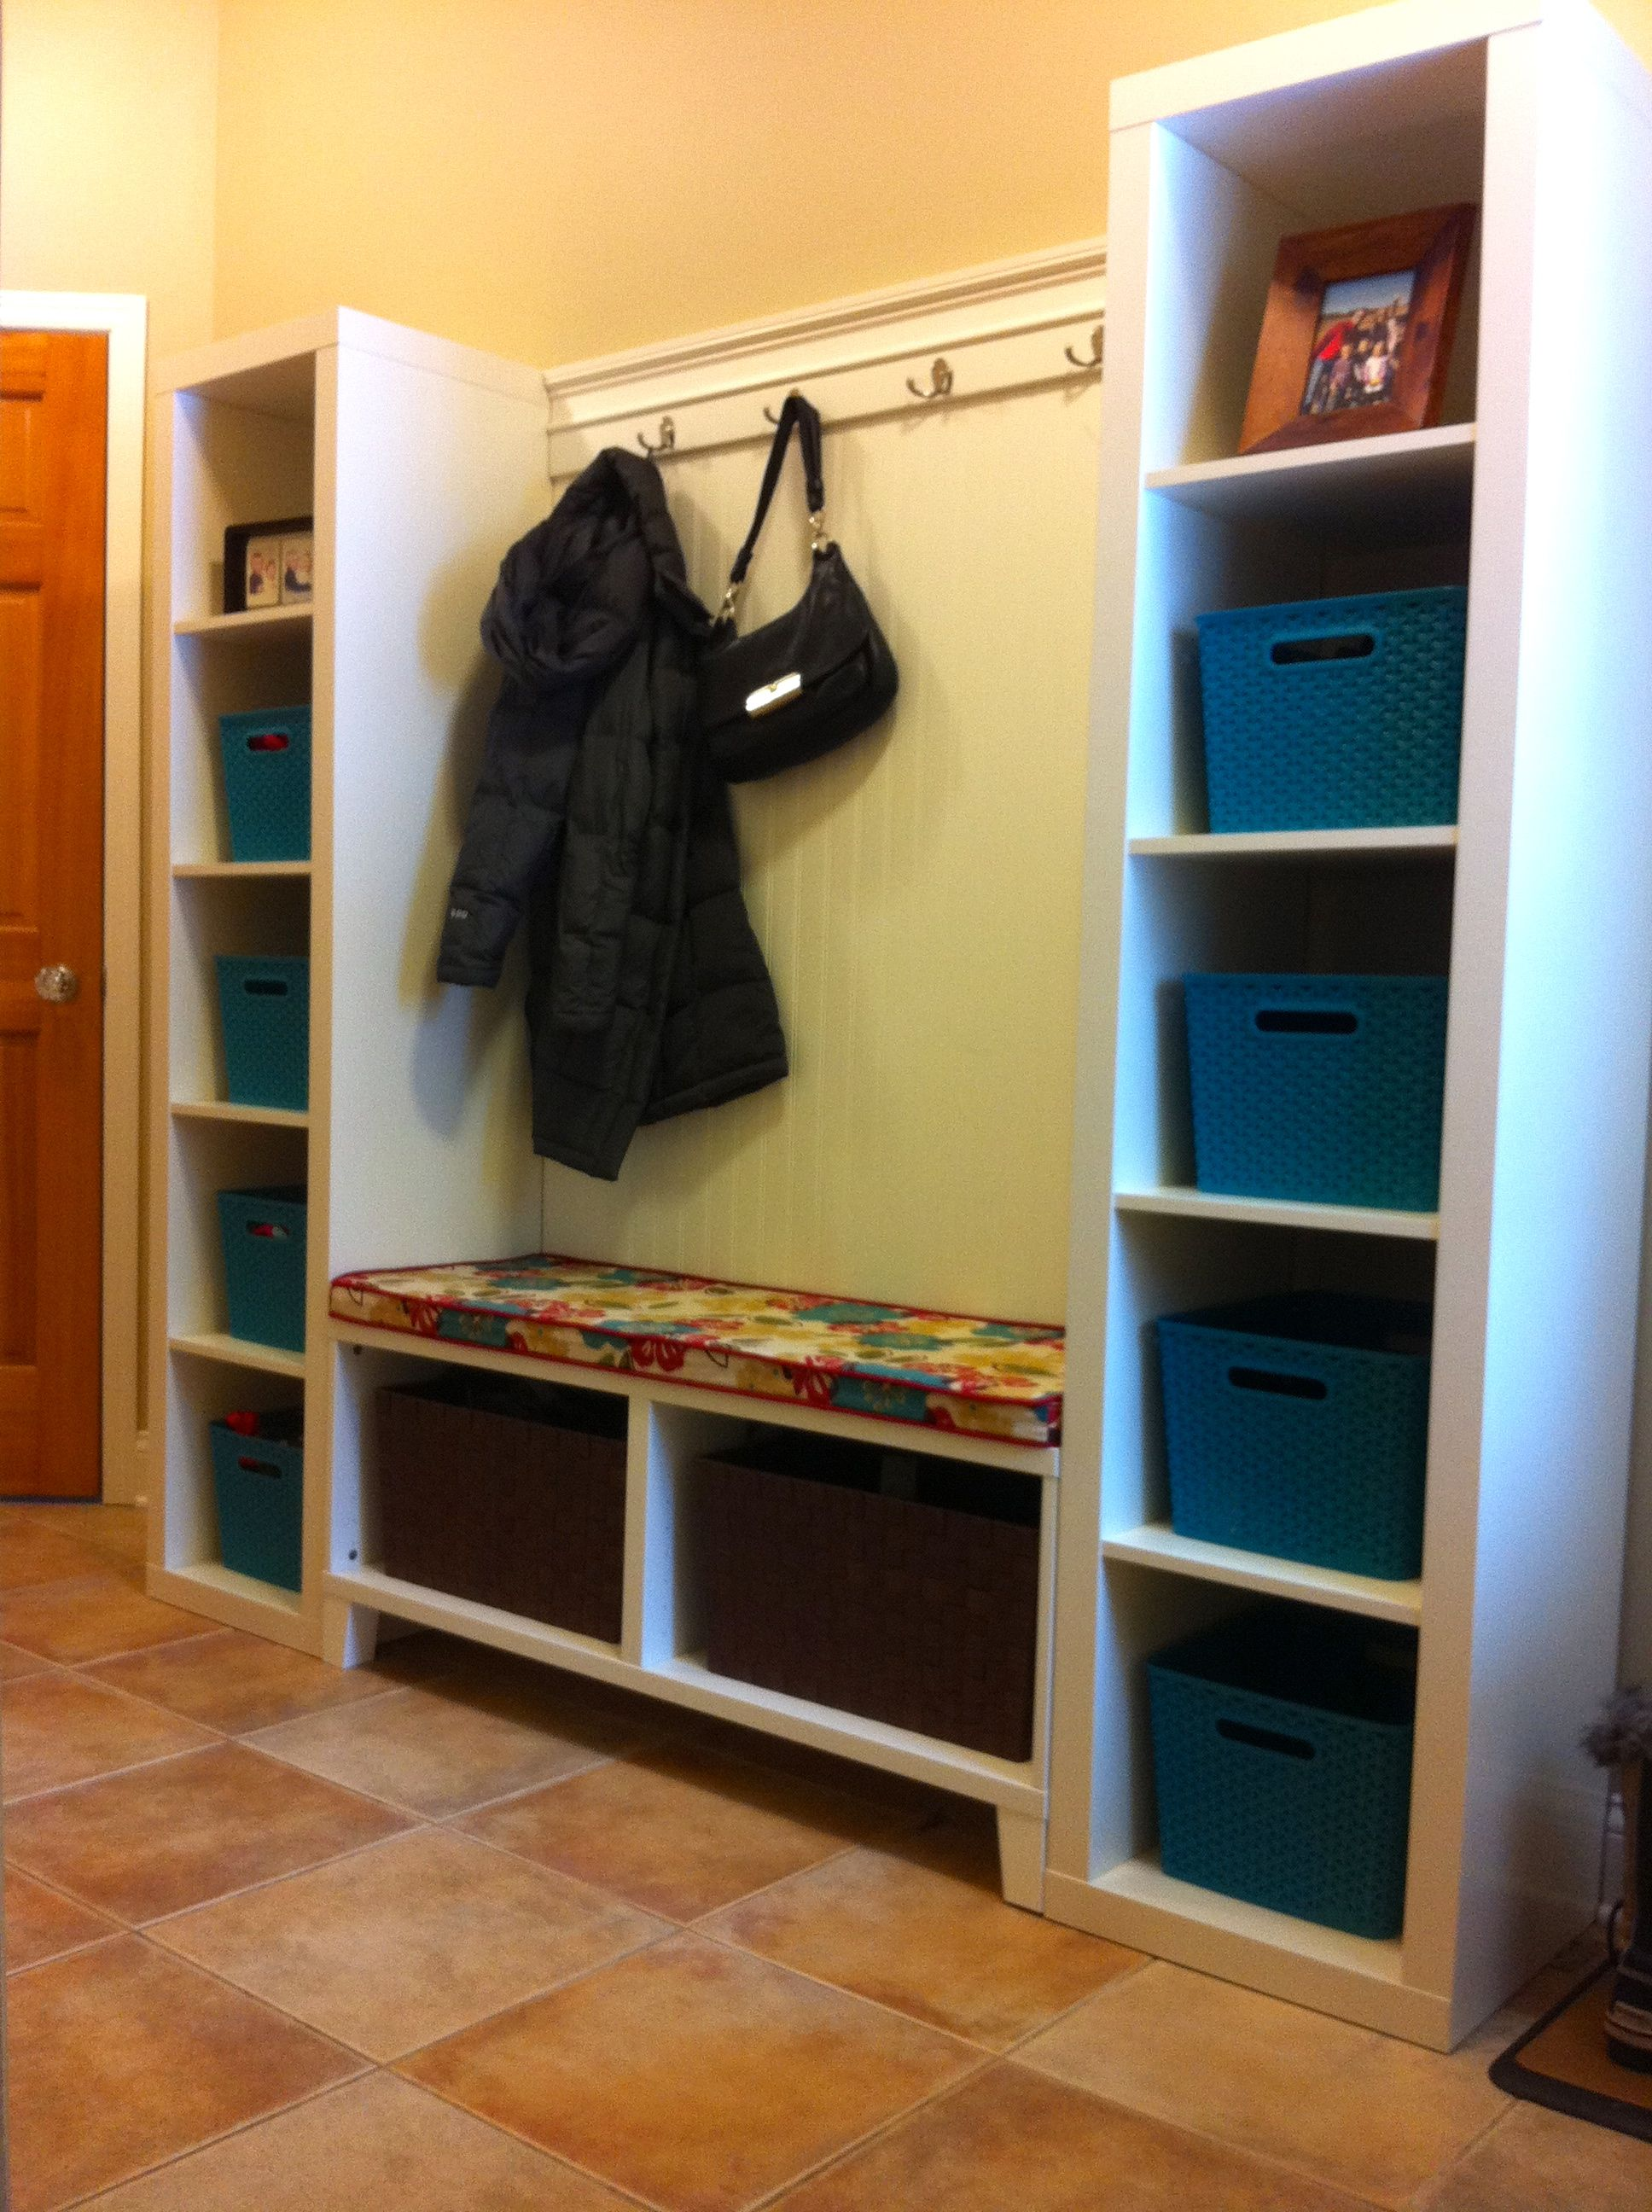 Photo 1: I Put All My Pins Together And Created This Mudroom: 2 Ikea